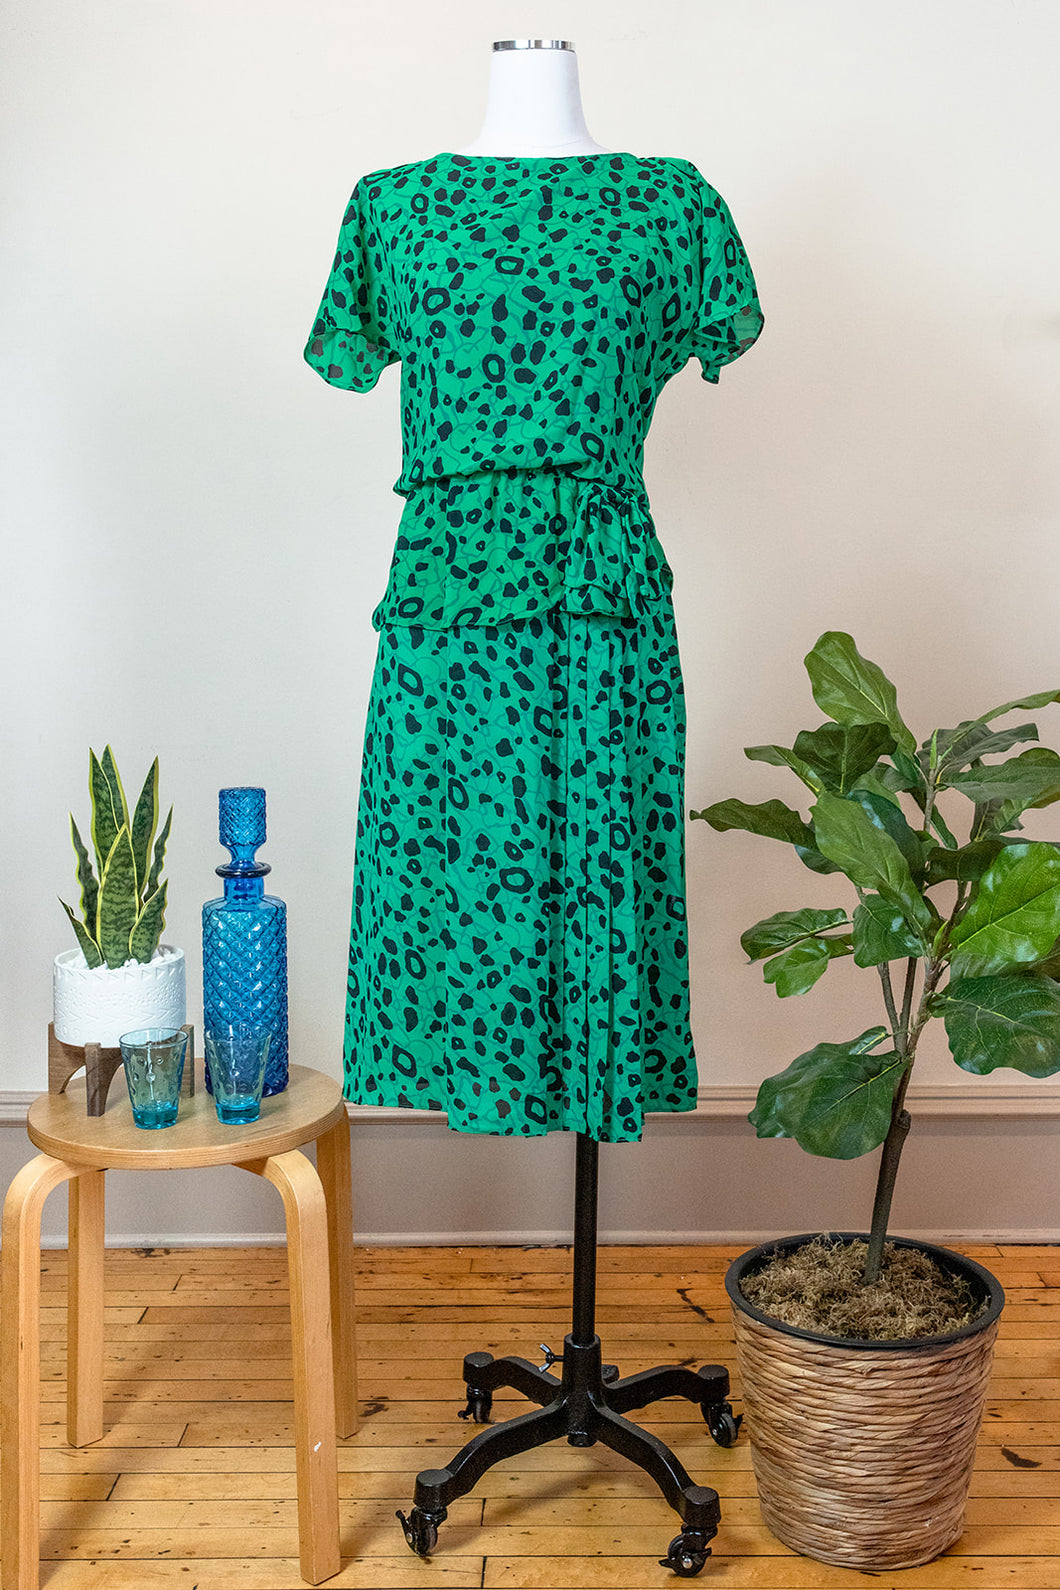 70s Green & Black Dress